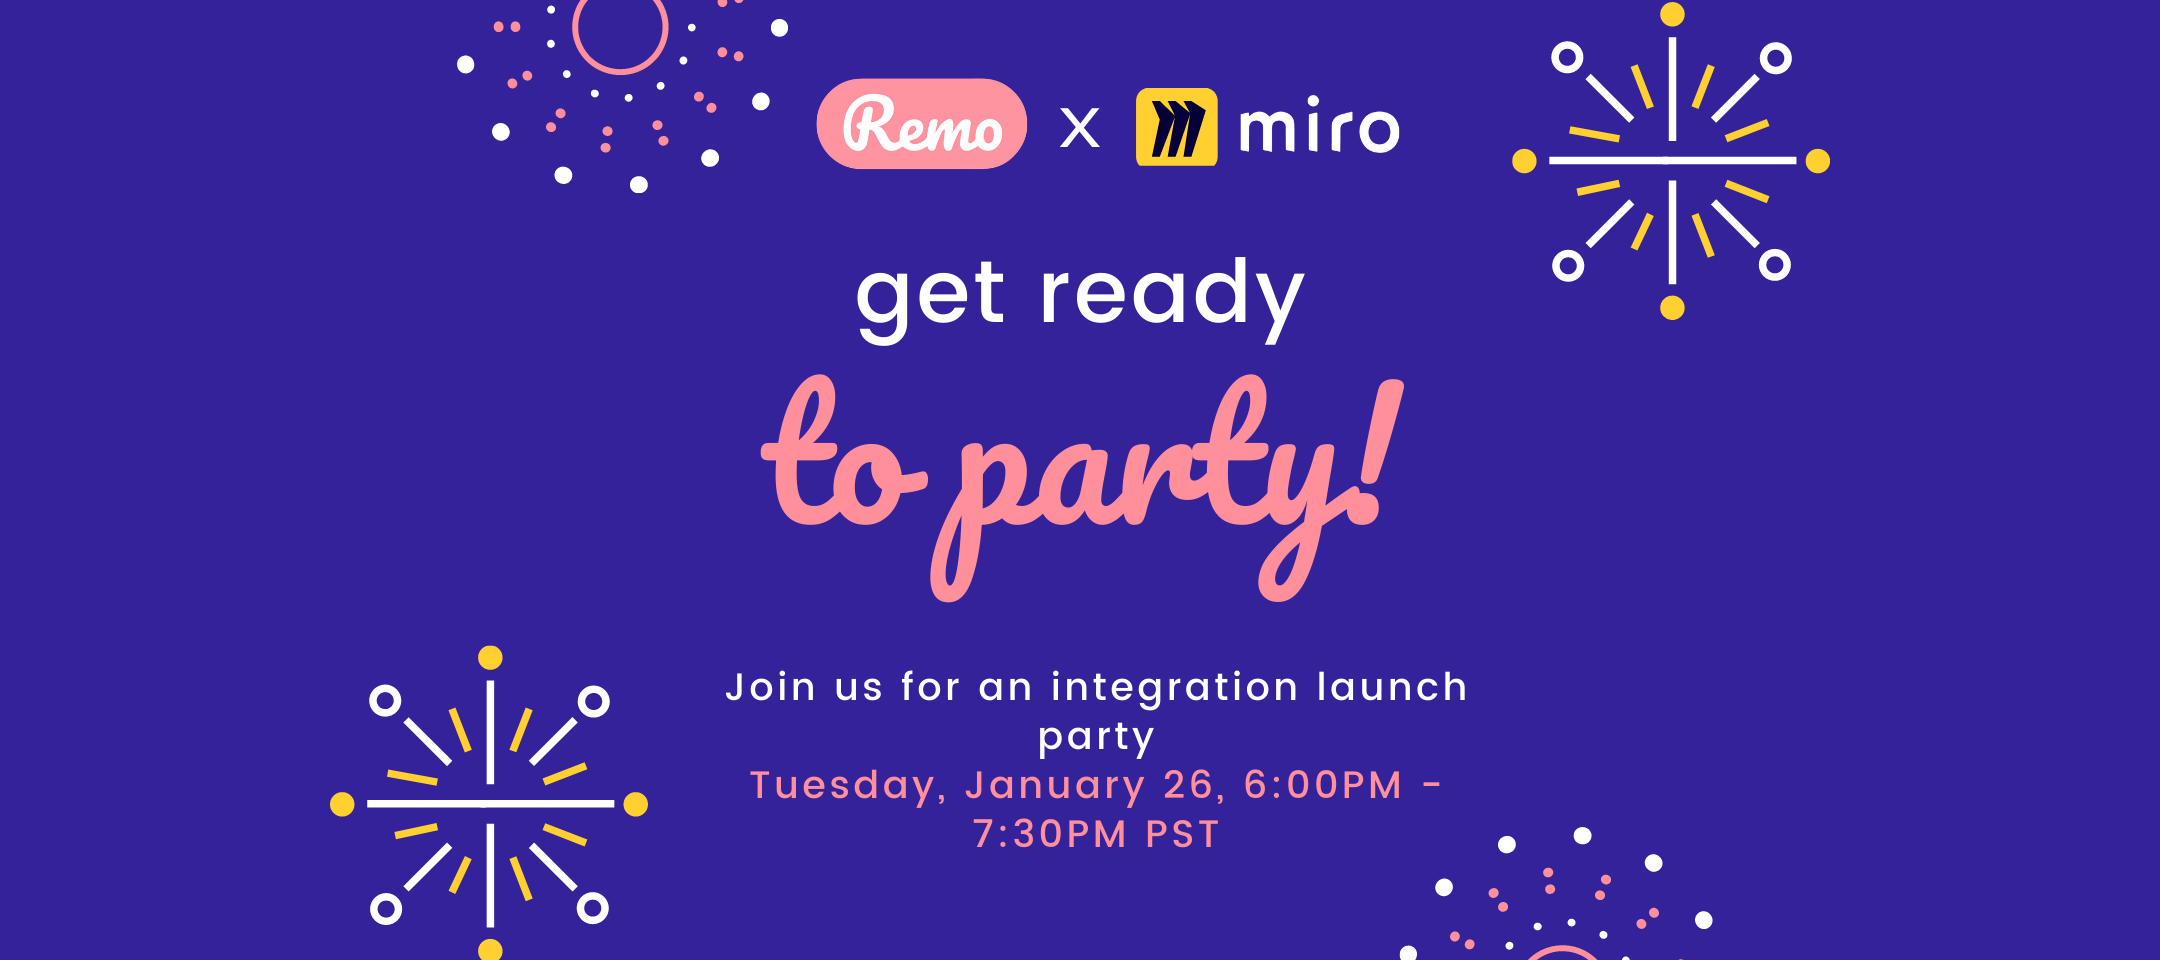 Join us for the Remo / Miro integration launch party!